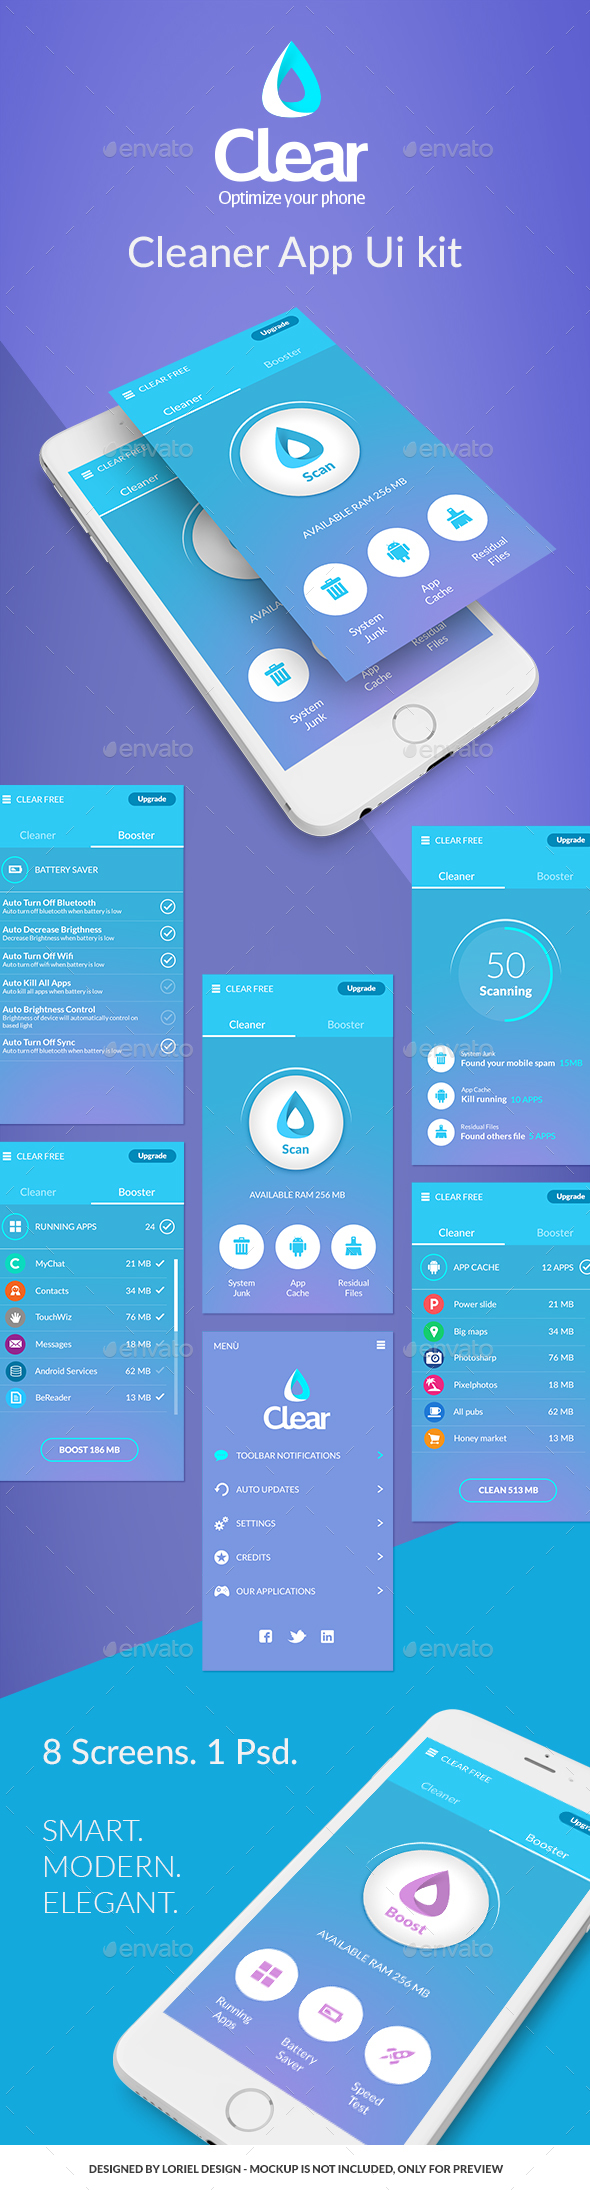 Evok Dashboard UI kit (User Interfaces)